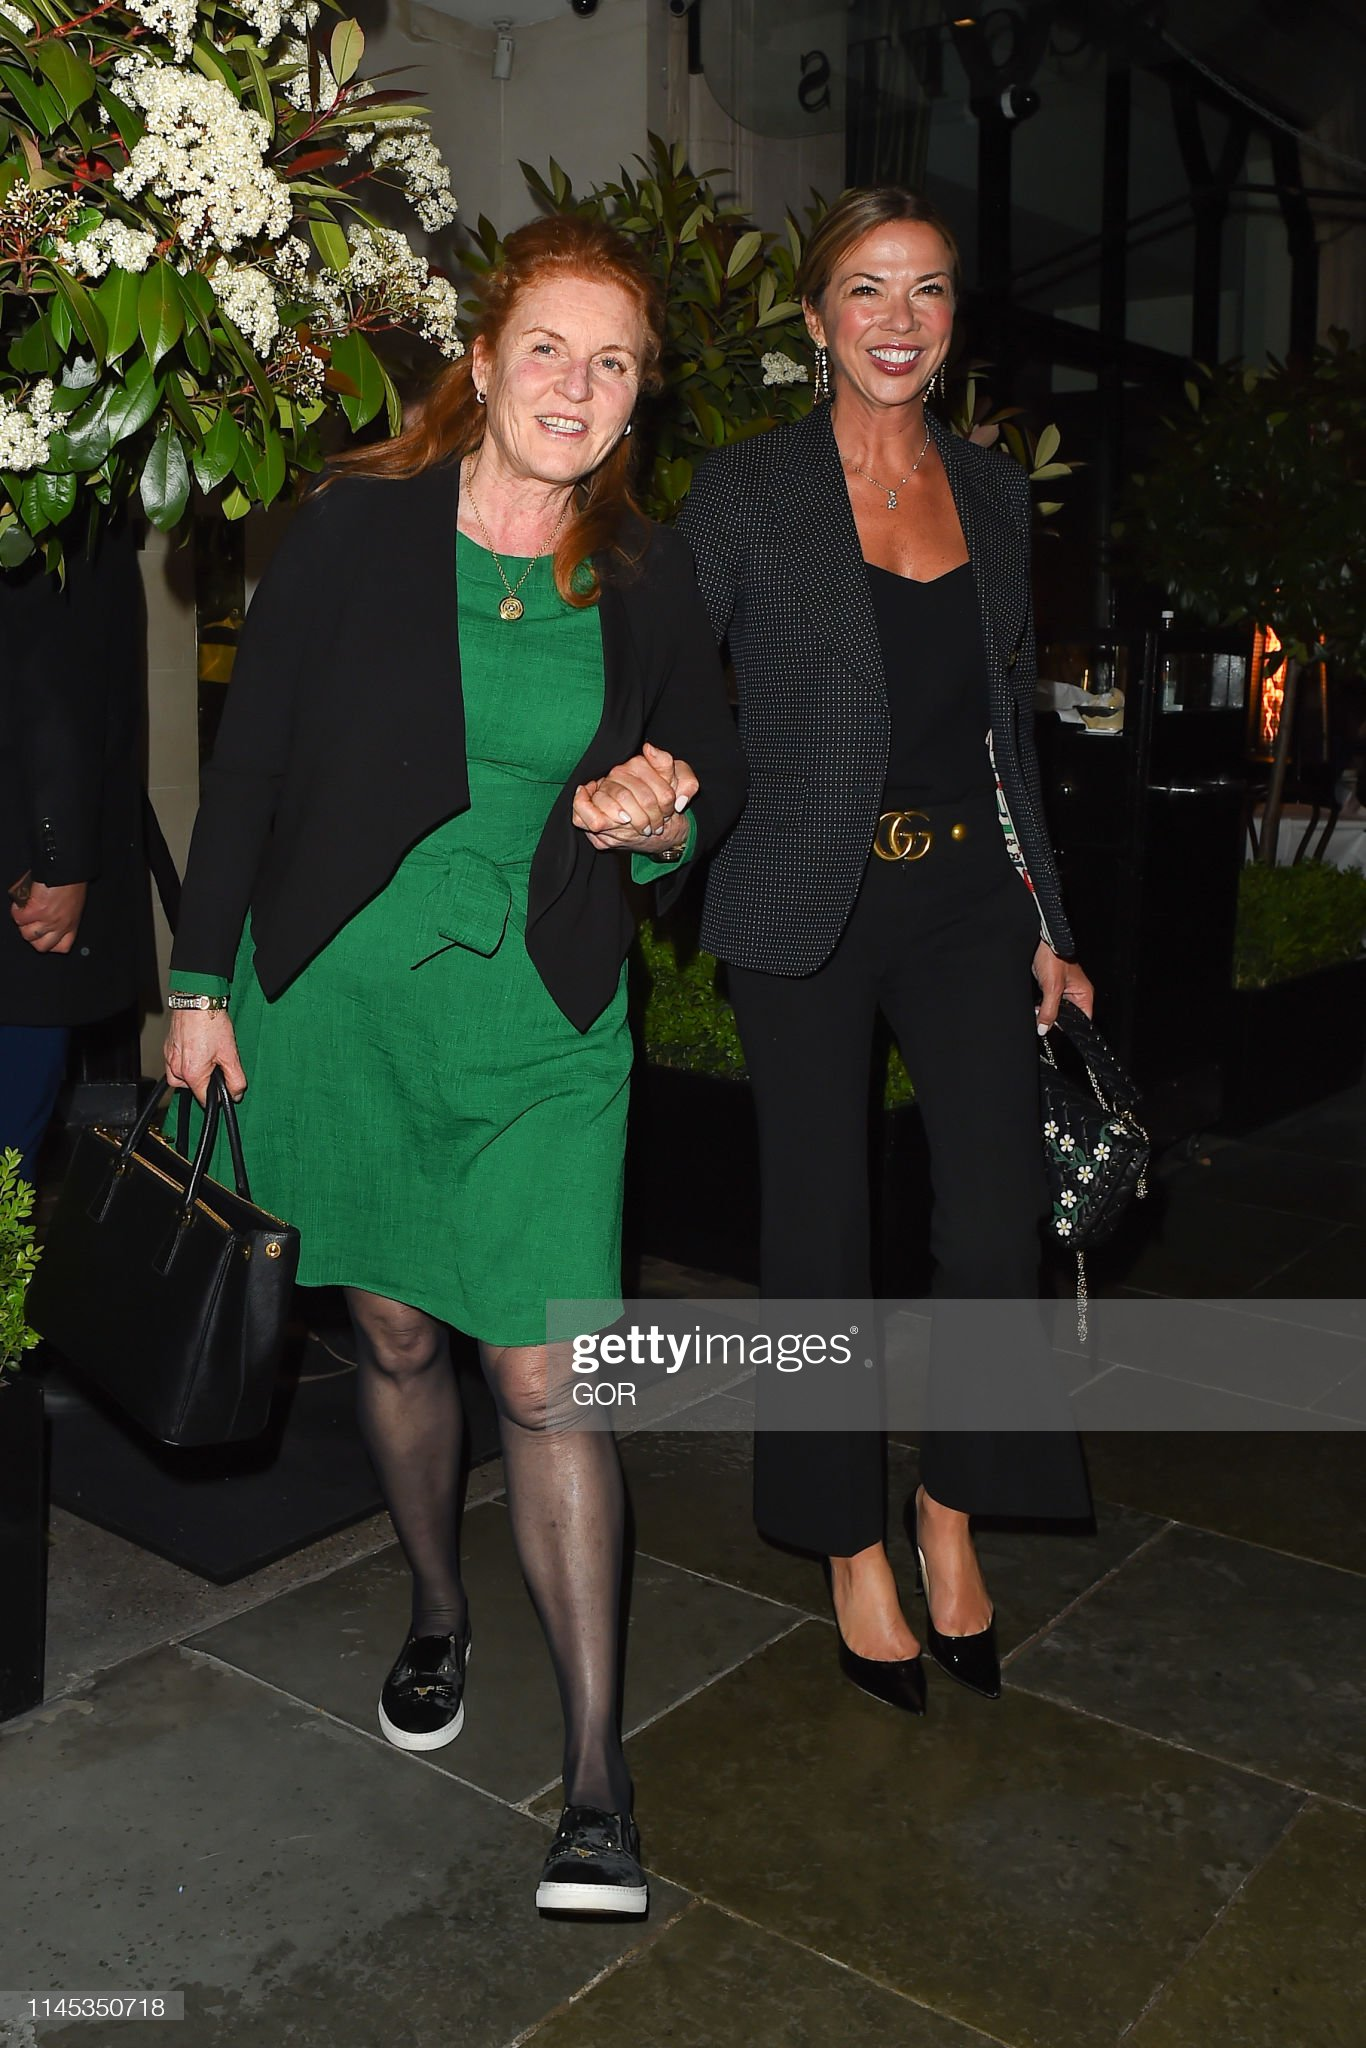 https://media.gettyimages.com/photos/sarah-ferguson-and-heather-kerzner-seen-leaving-scotts-restaurant-in-picture-id1145350718?s=2048x2048